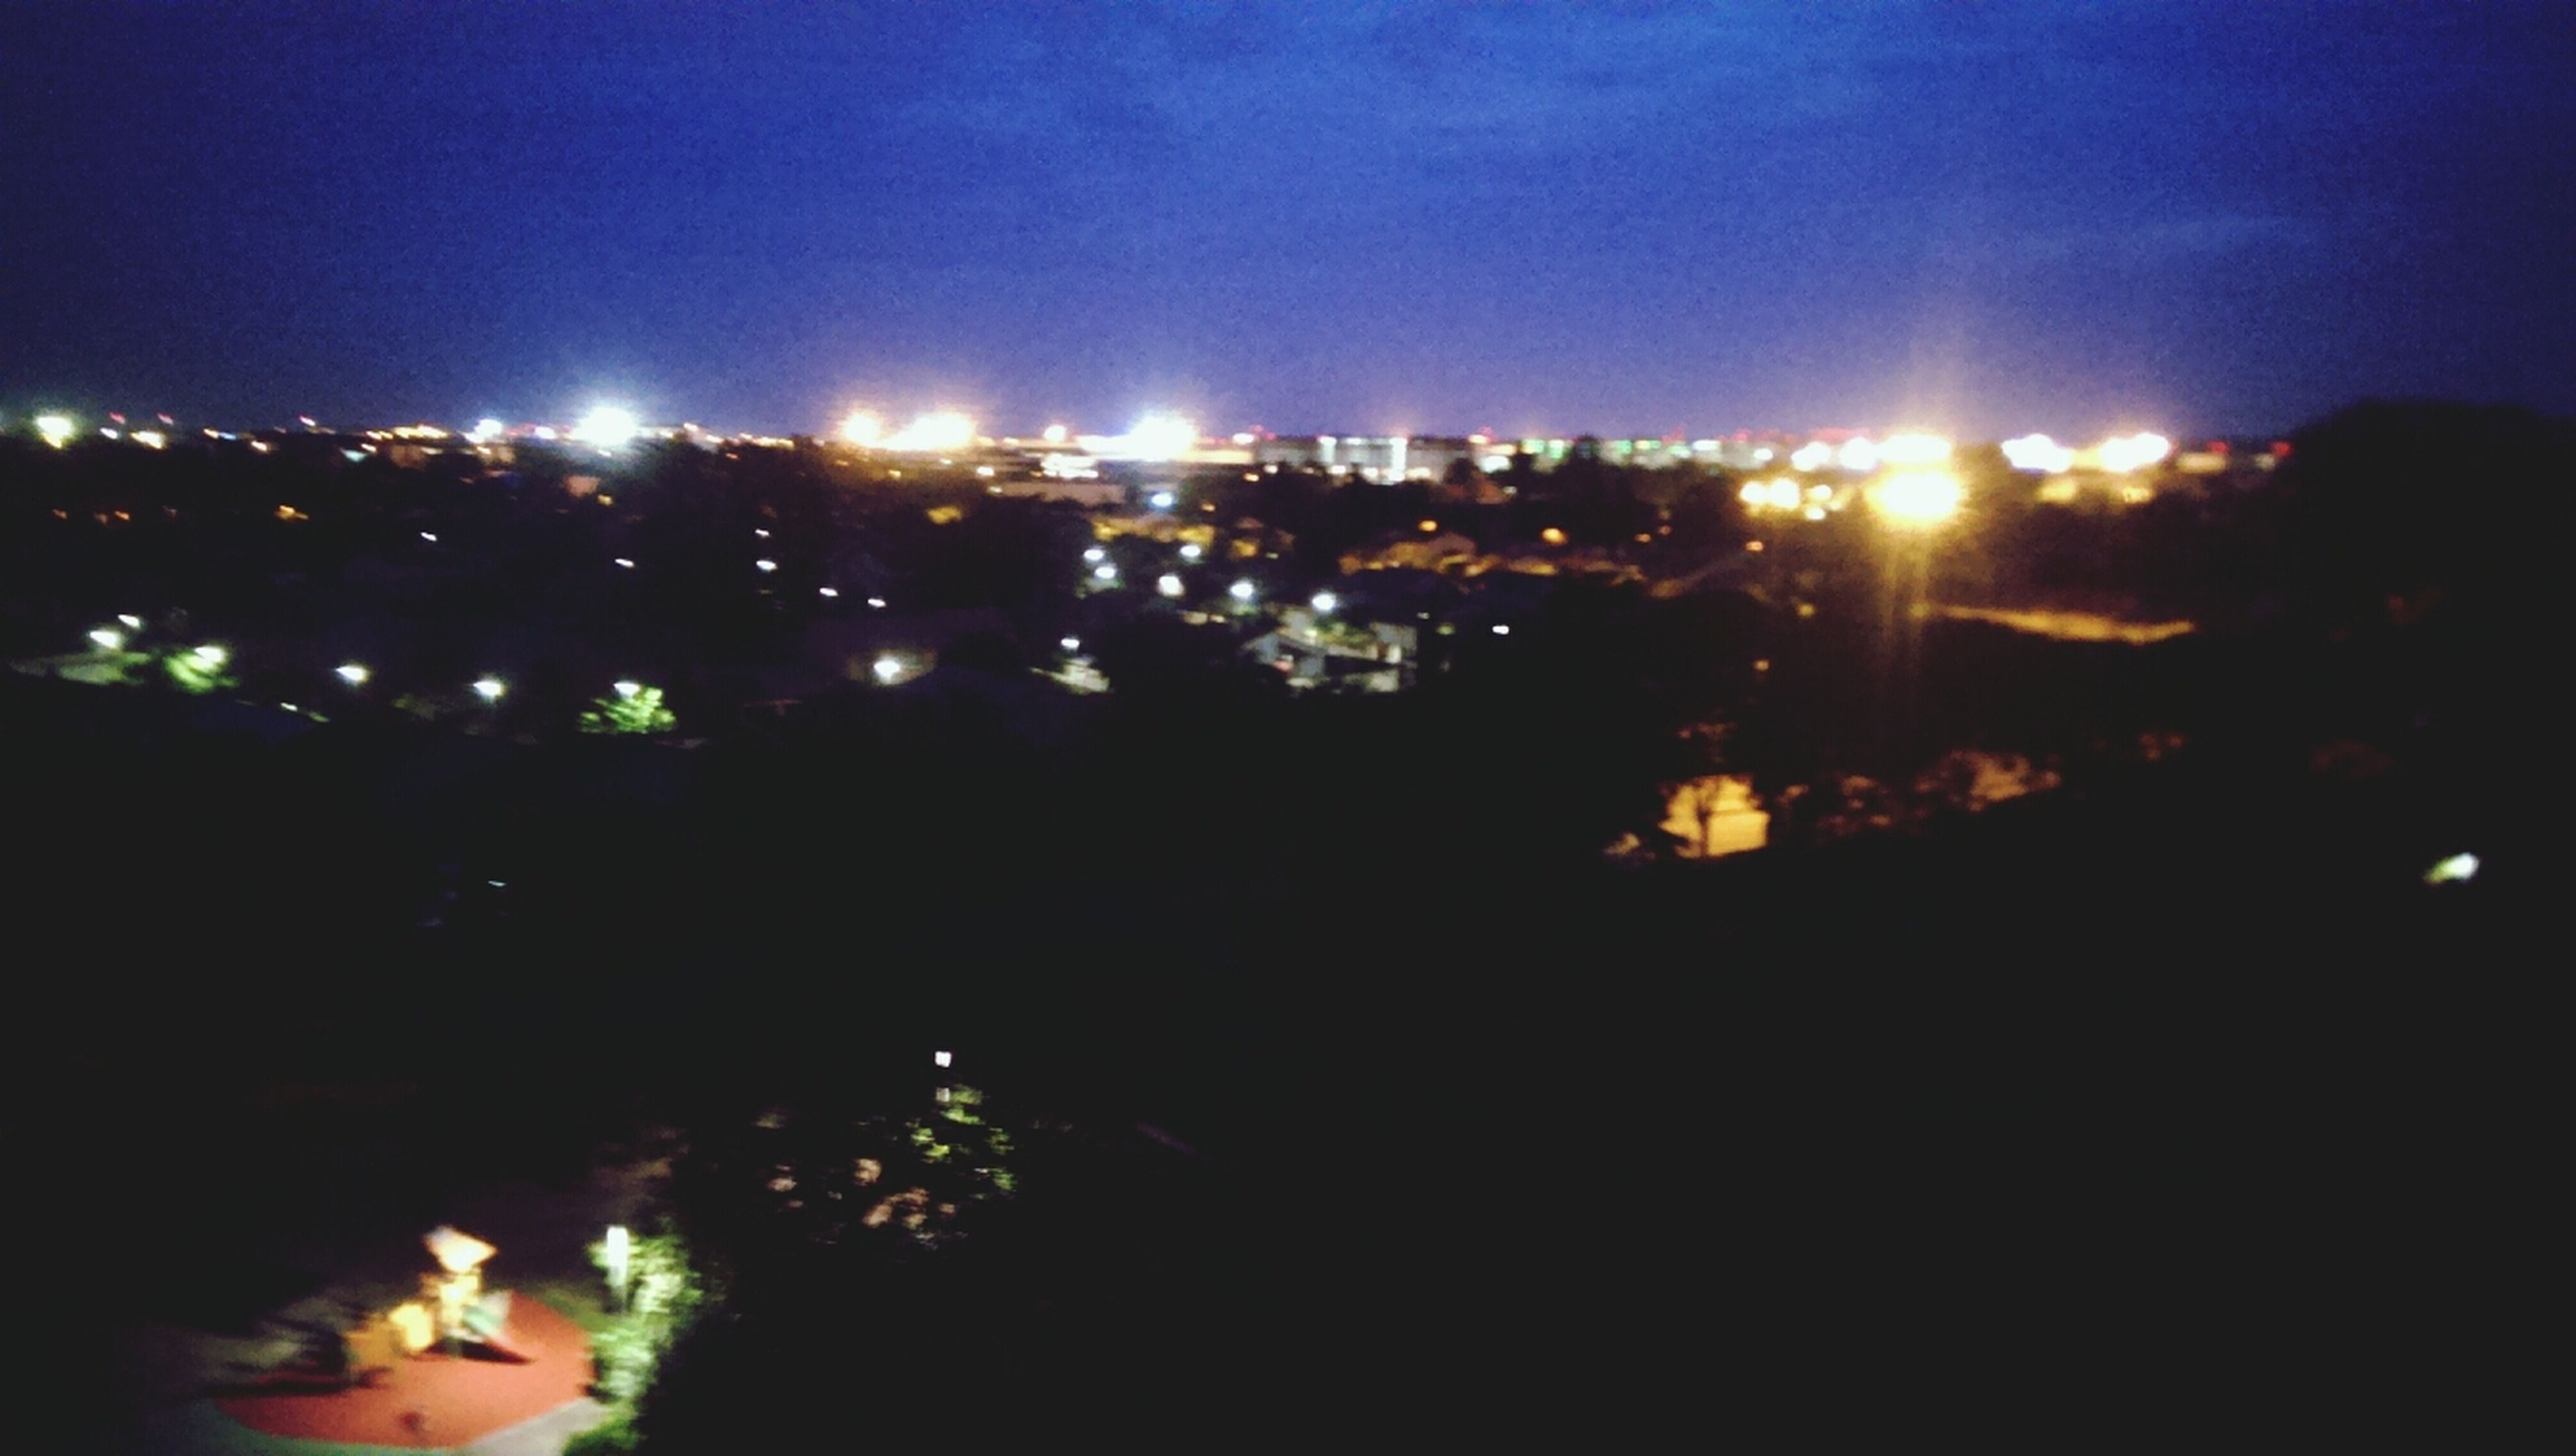 illuminated, night, building exterior, city, built structure, architecture, cityscape, sky, glowing, dark, residential structure, residential building, high angle view, residential district, light - natural phenomenon, outdoors, lighting equipment, city life, street light, dusk